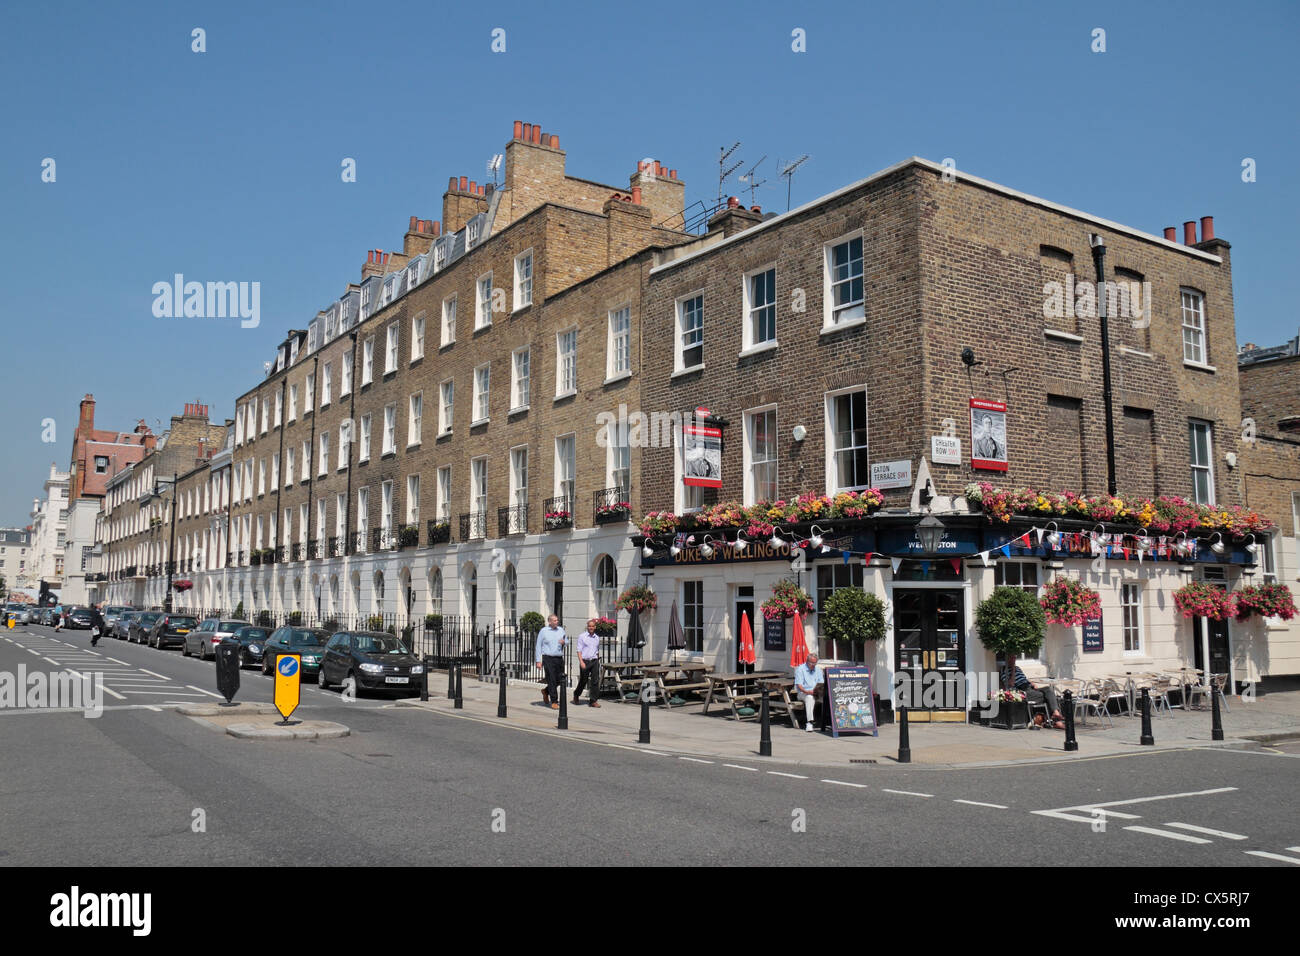 View down Eaton Terrace with the Duke of Wellington public house, City of Westminster, London, SW1, UK. - Stock Image